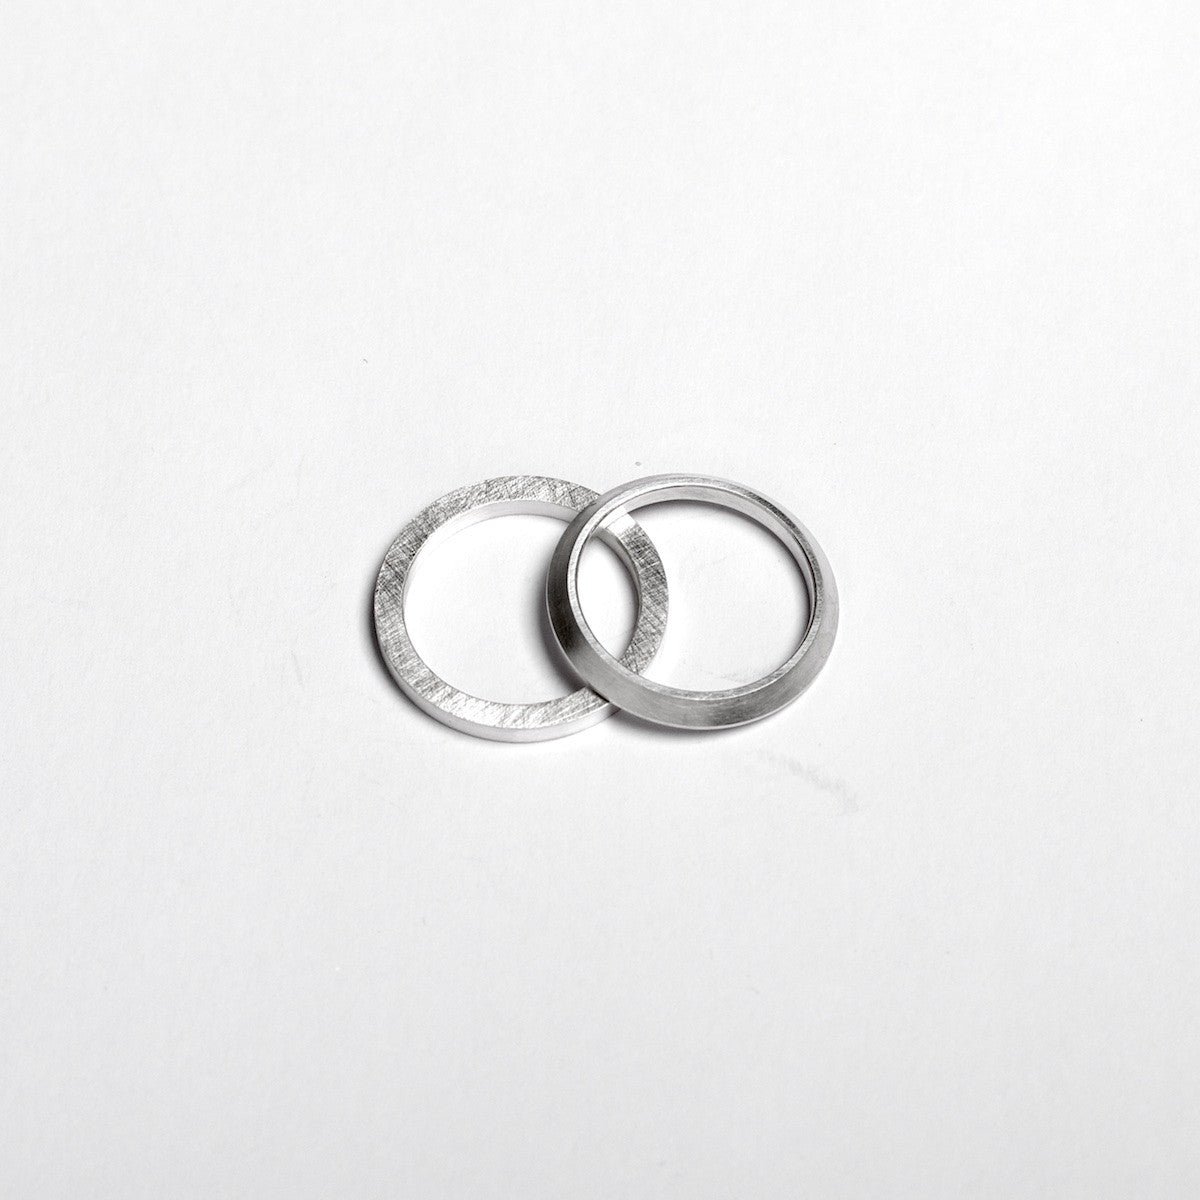 'Triangular and Square' Set of Silver Rings